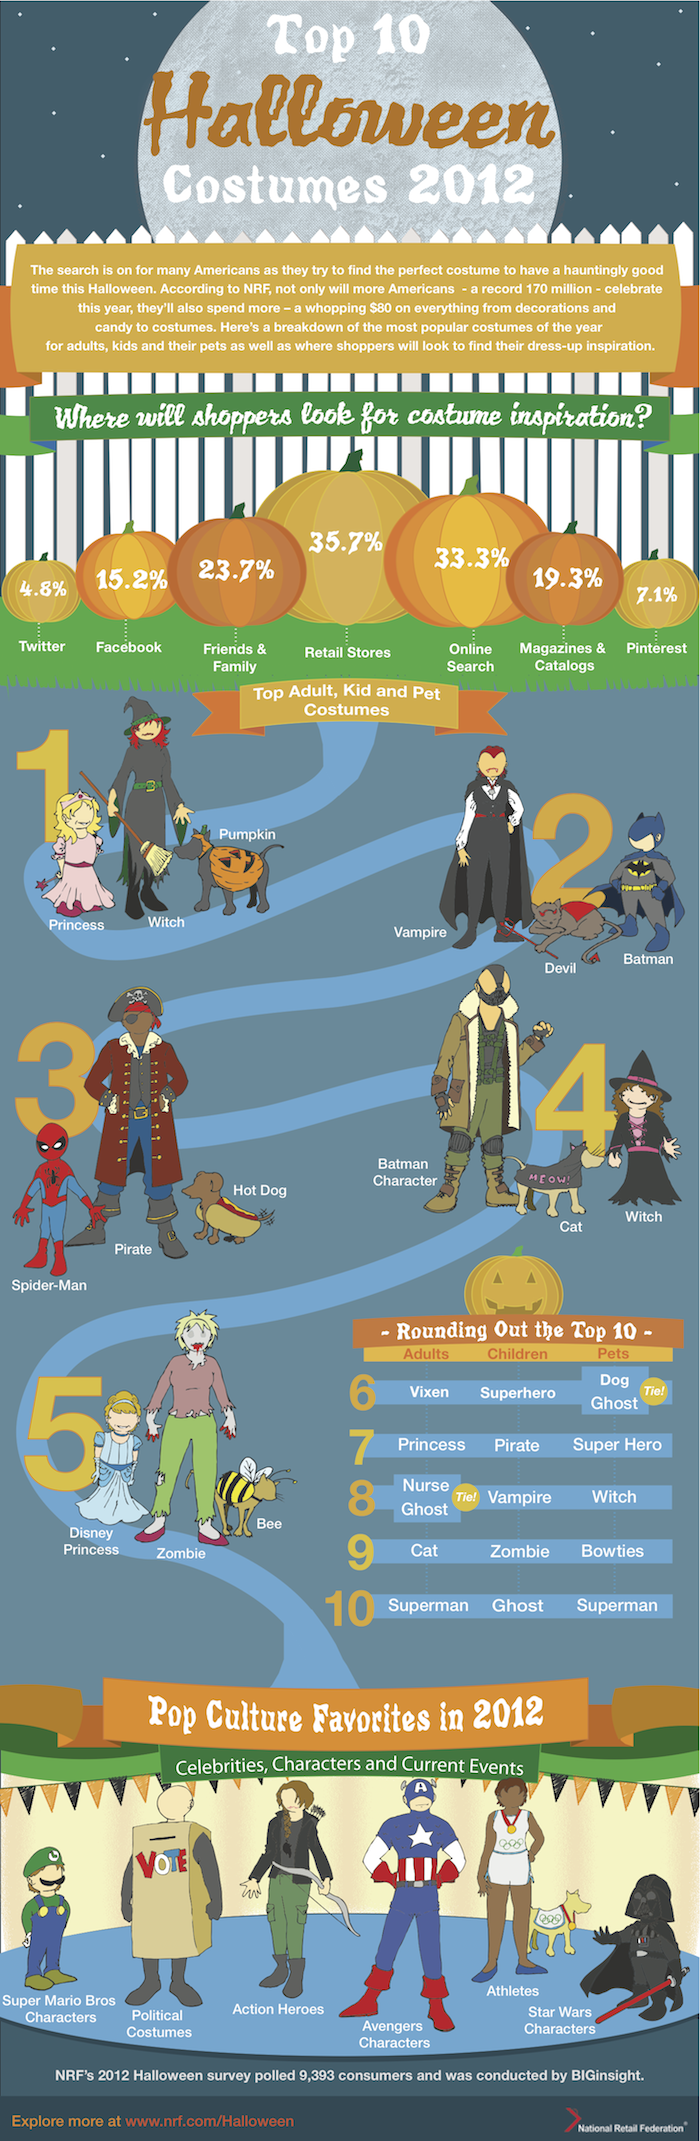 Top Halloween costumes for adults, kids and pets in 2012  Infographic